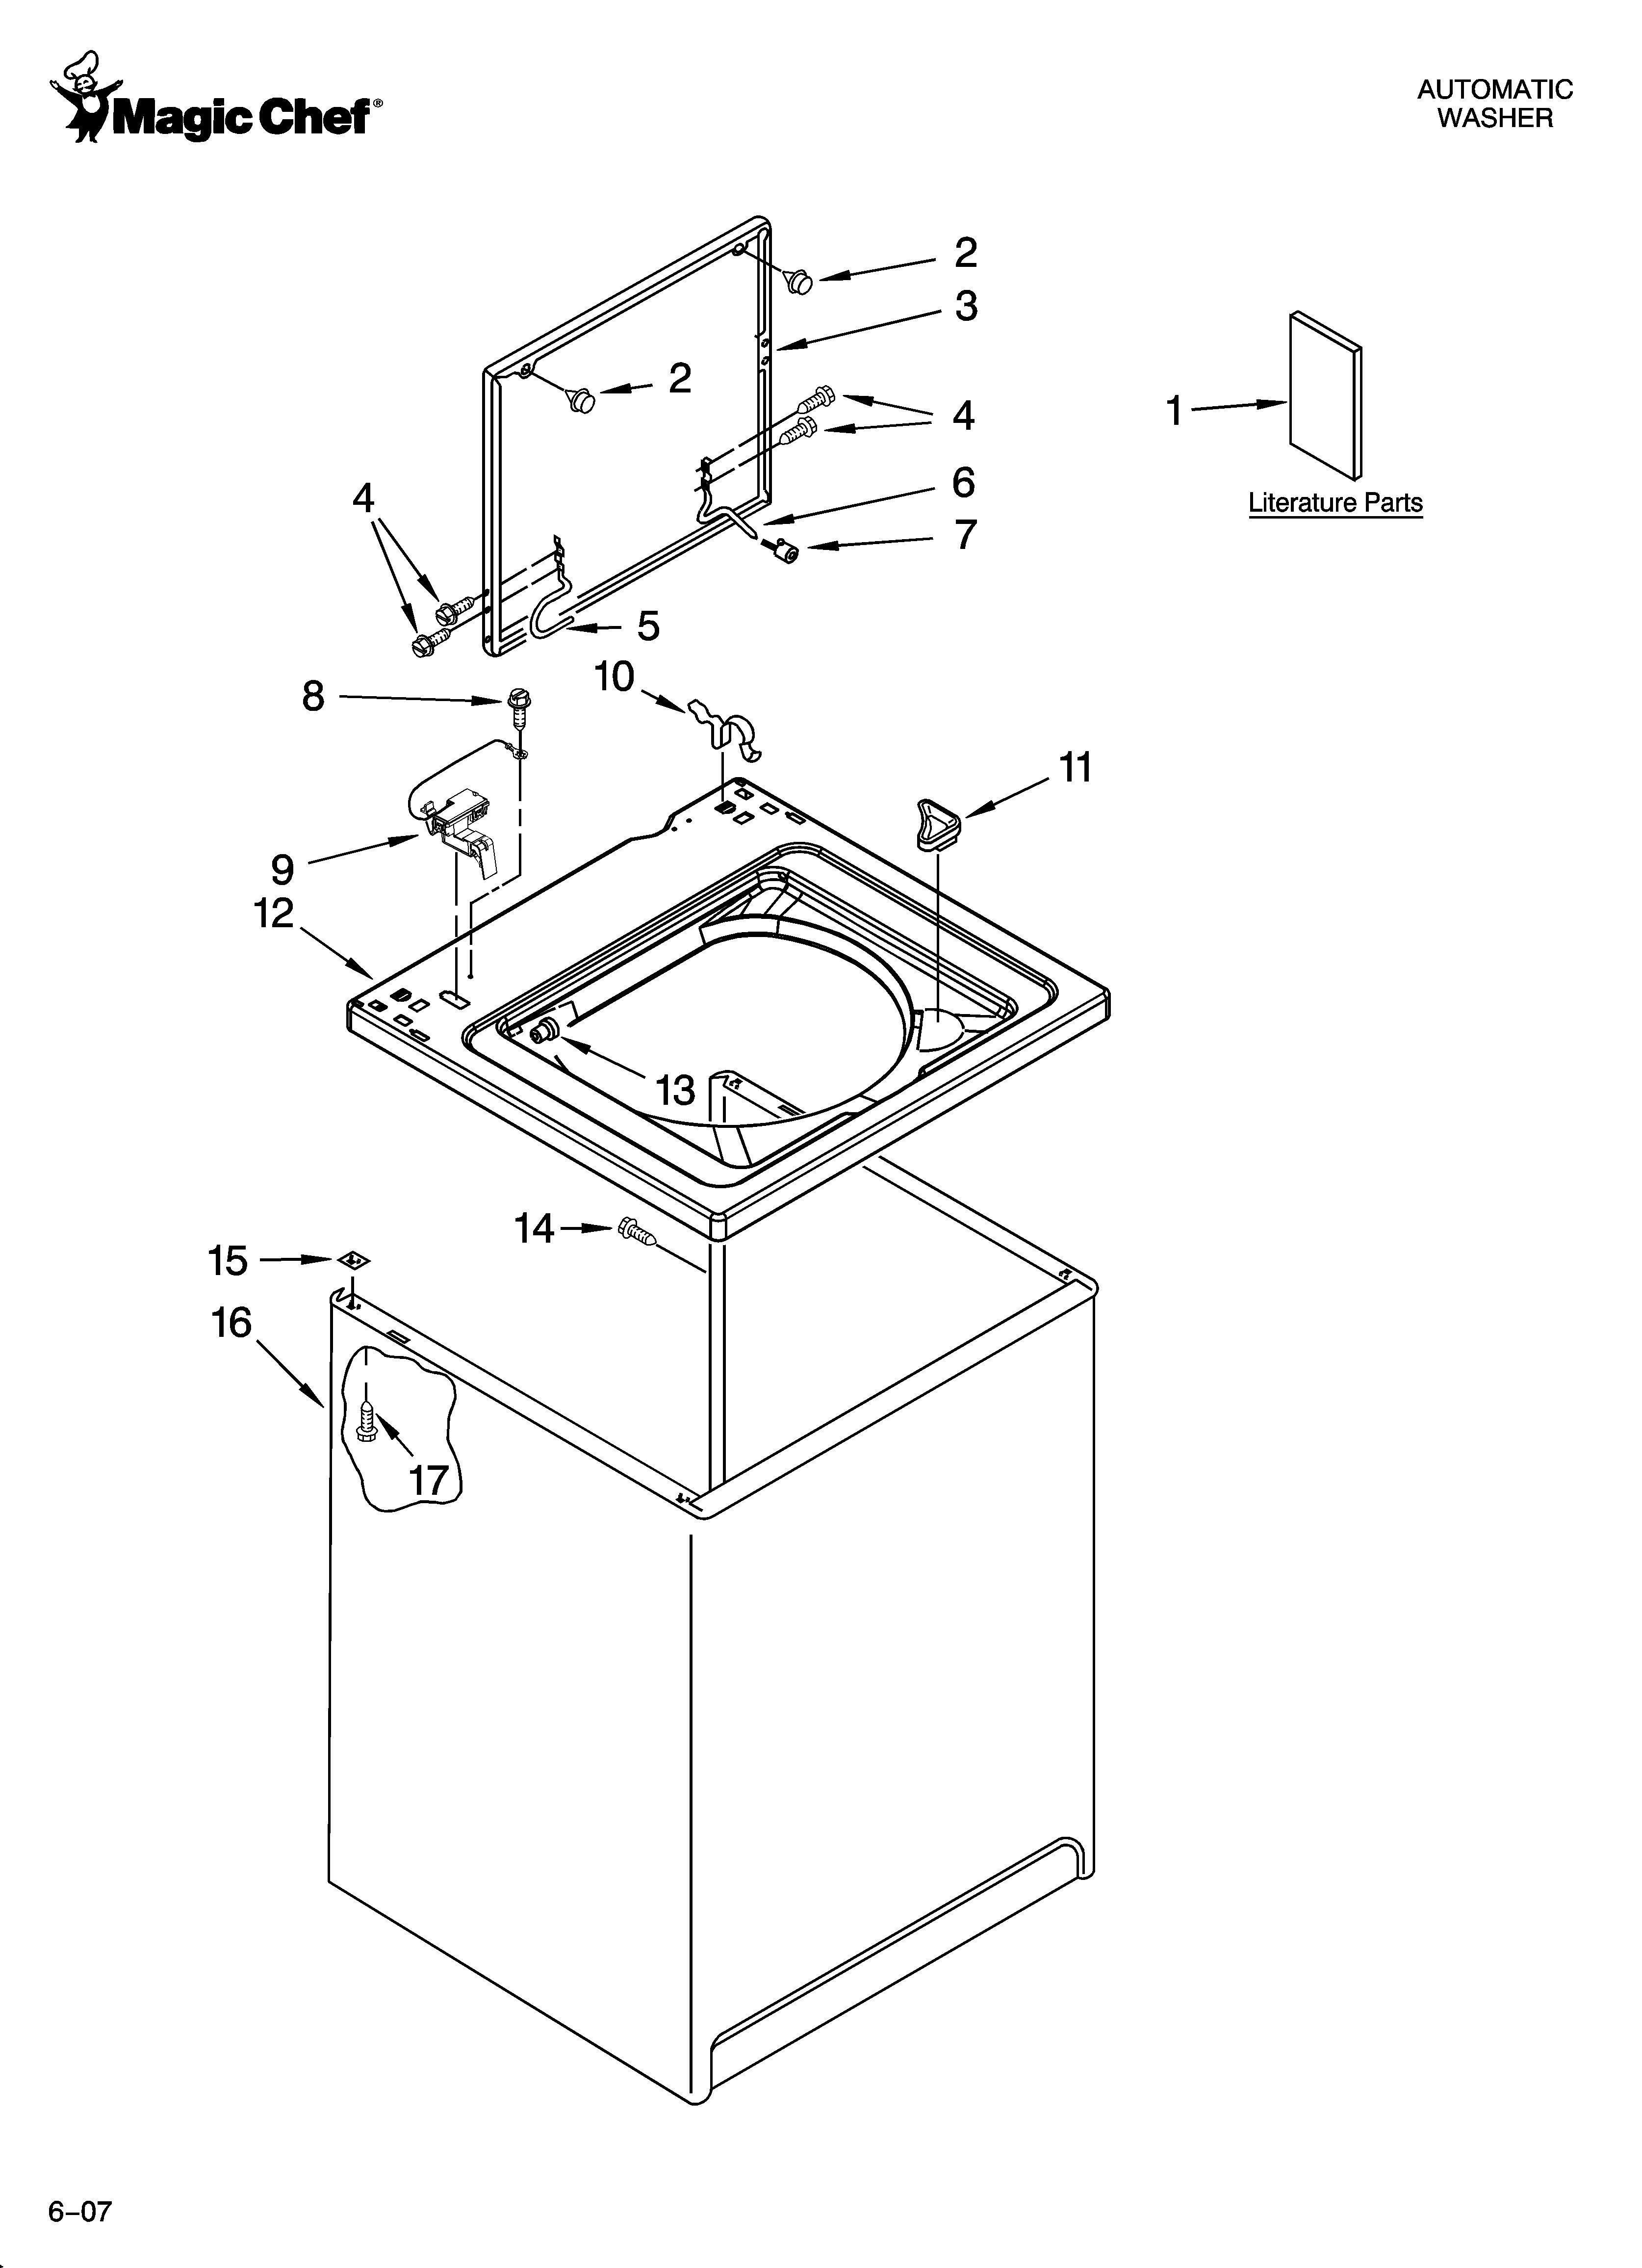 magic chef residential washer parts